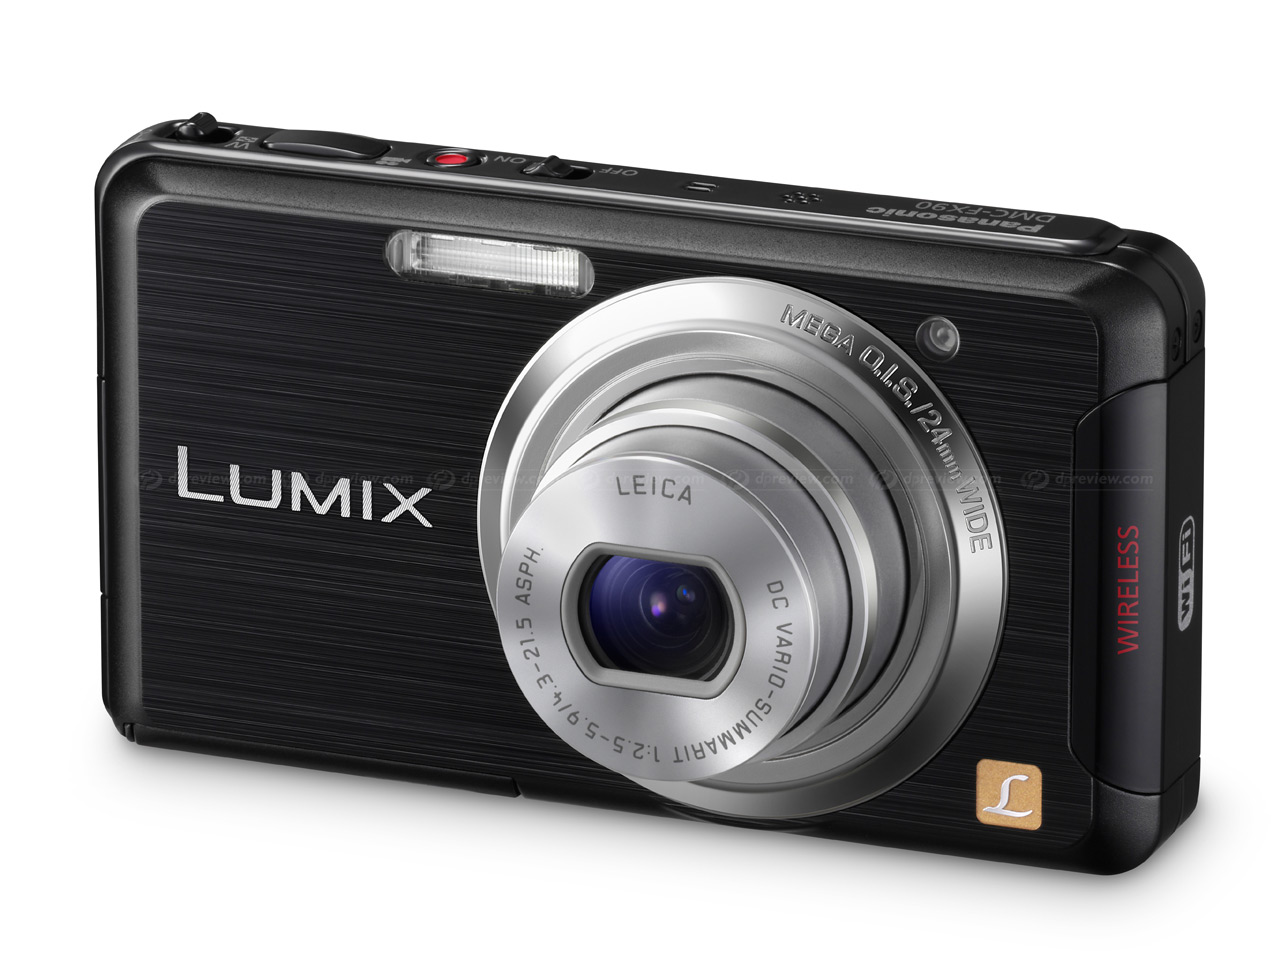 Lumix FX90 Wi-Fi-enabled touchscreen compact camera: Digital